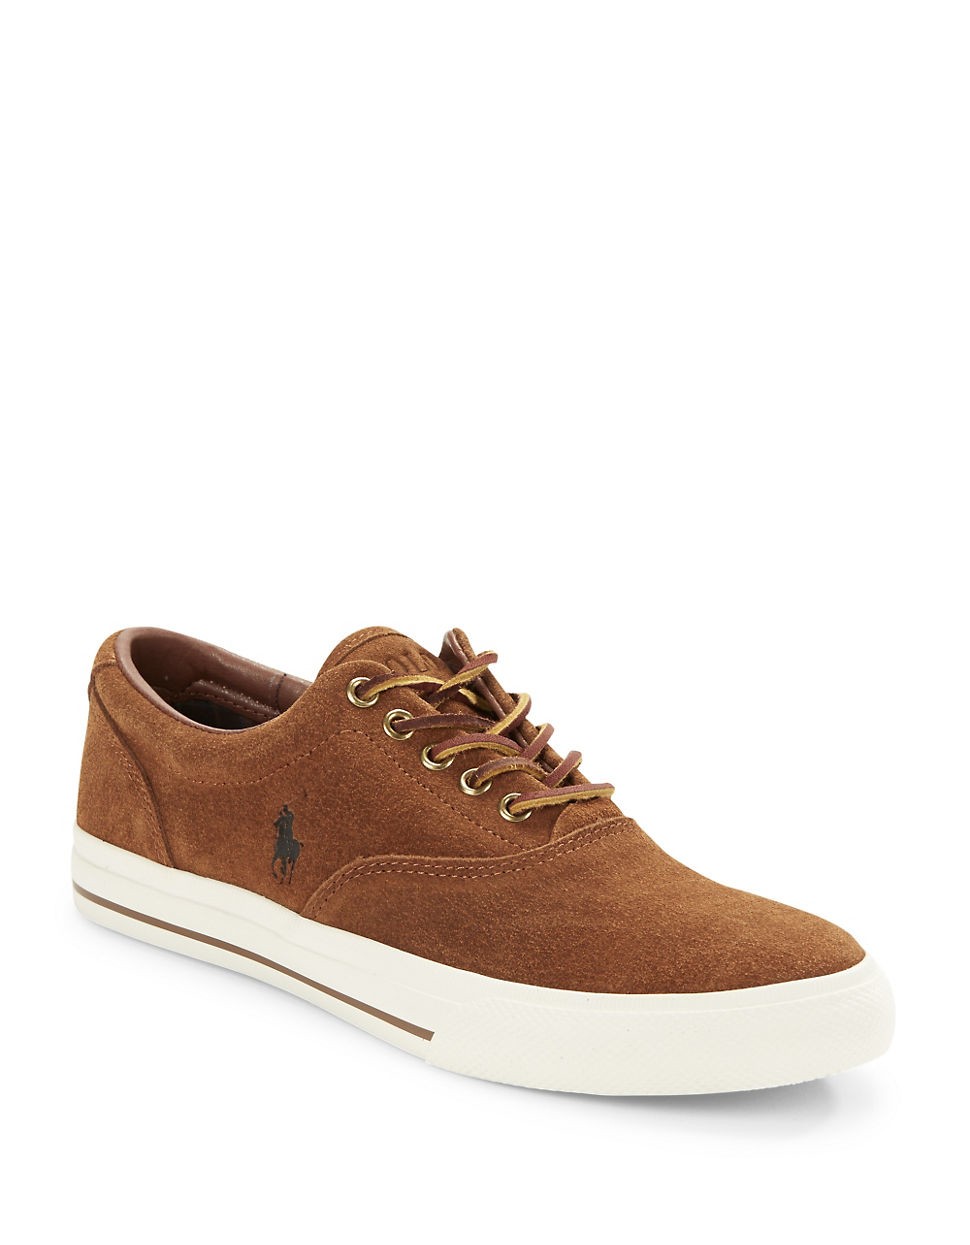 lyst polo ralph lauren vaughn suede lace up sneakers in brown for men. Black Bedroom Furniture Sets. Home Design Ideas